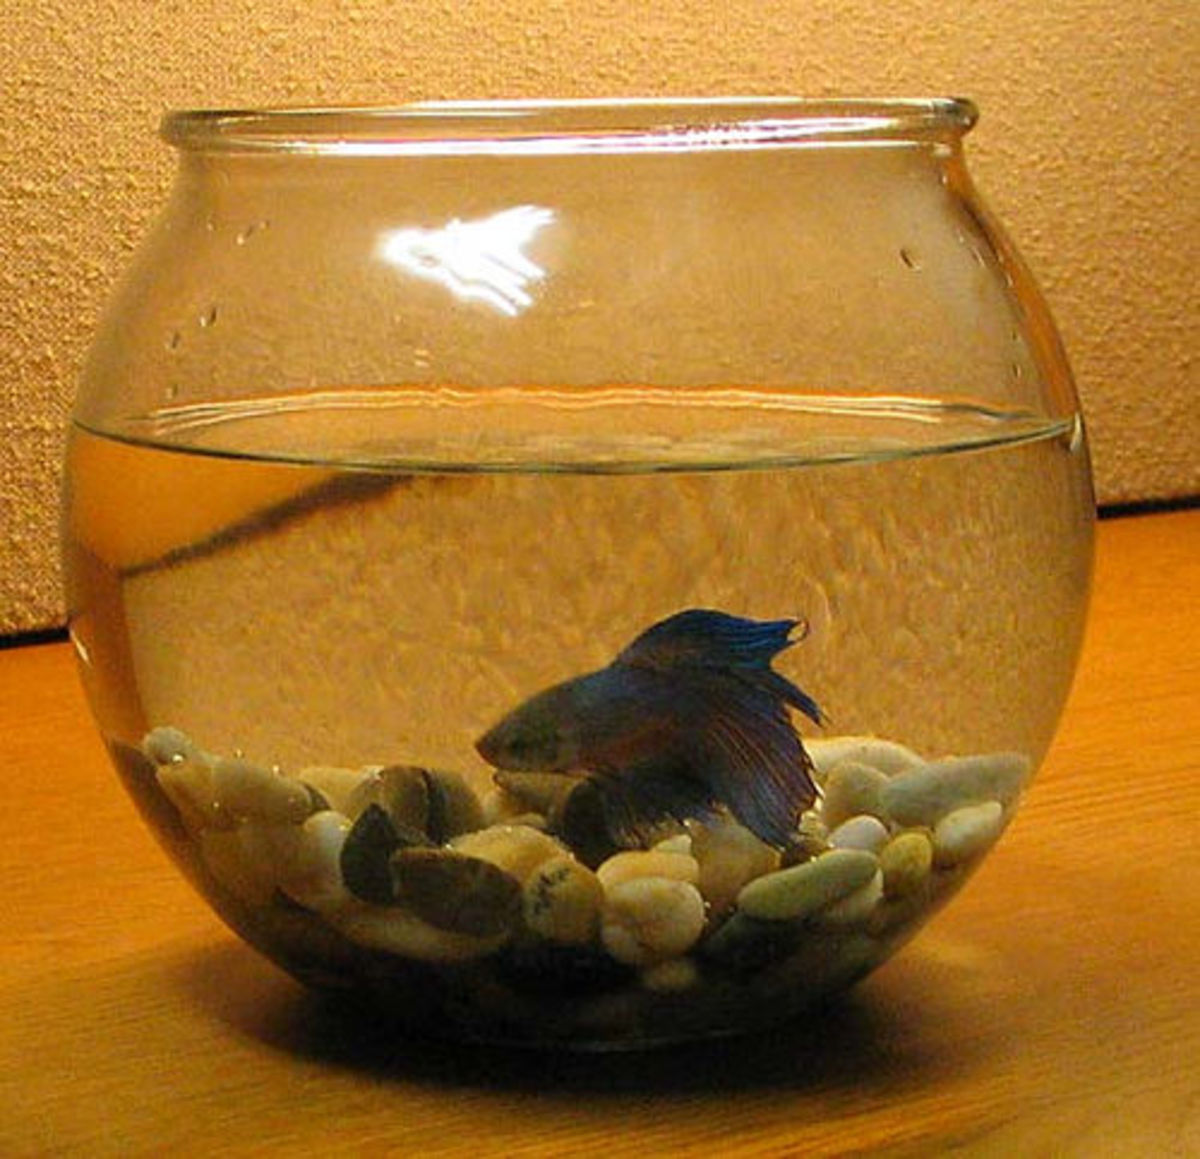 Bowls or vases are not suitable homes for fish.